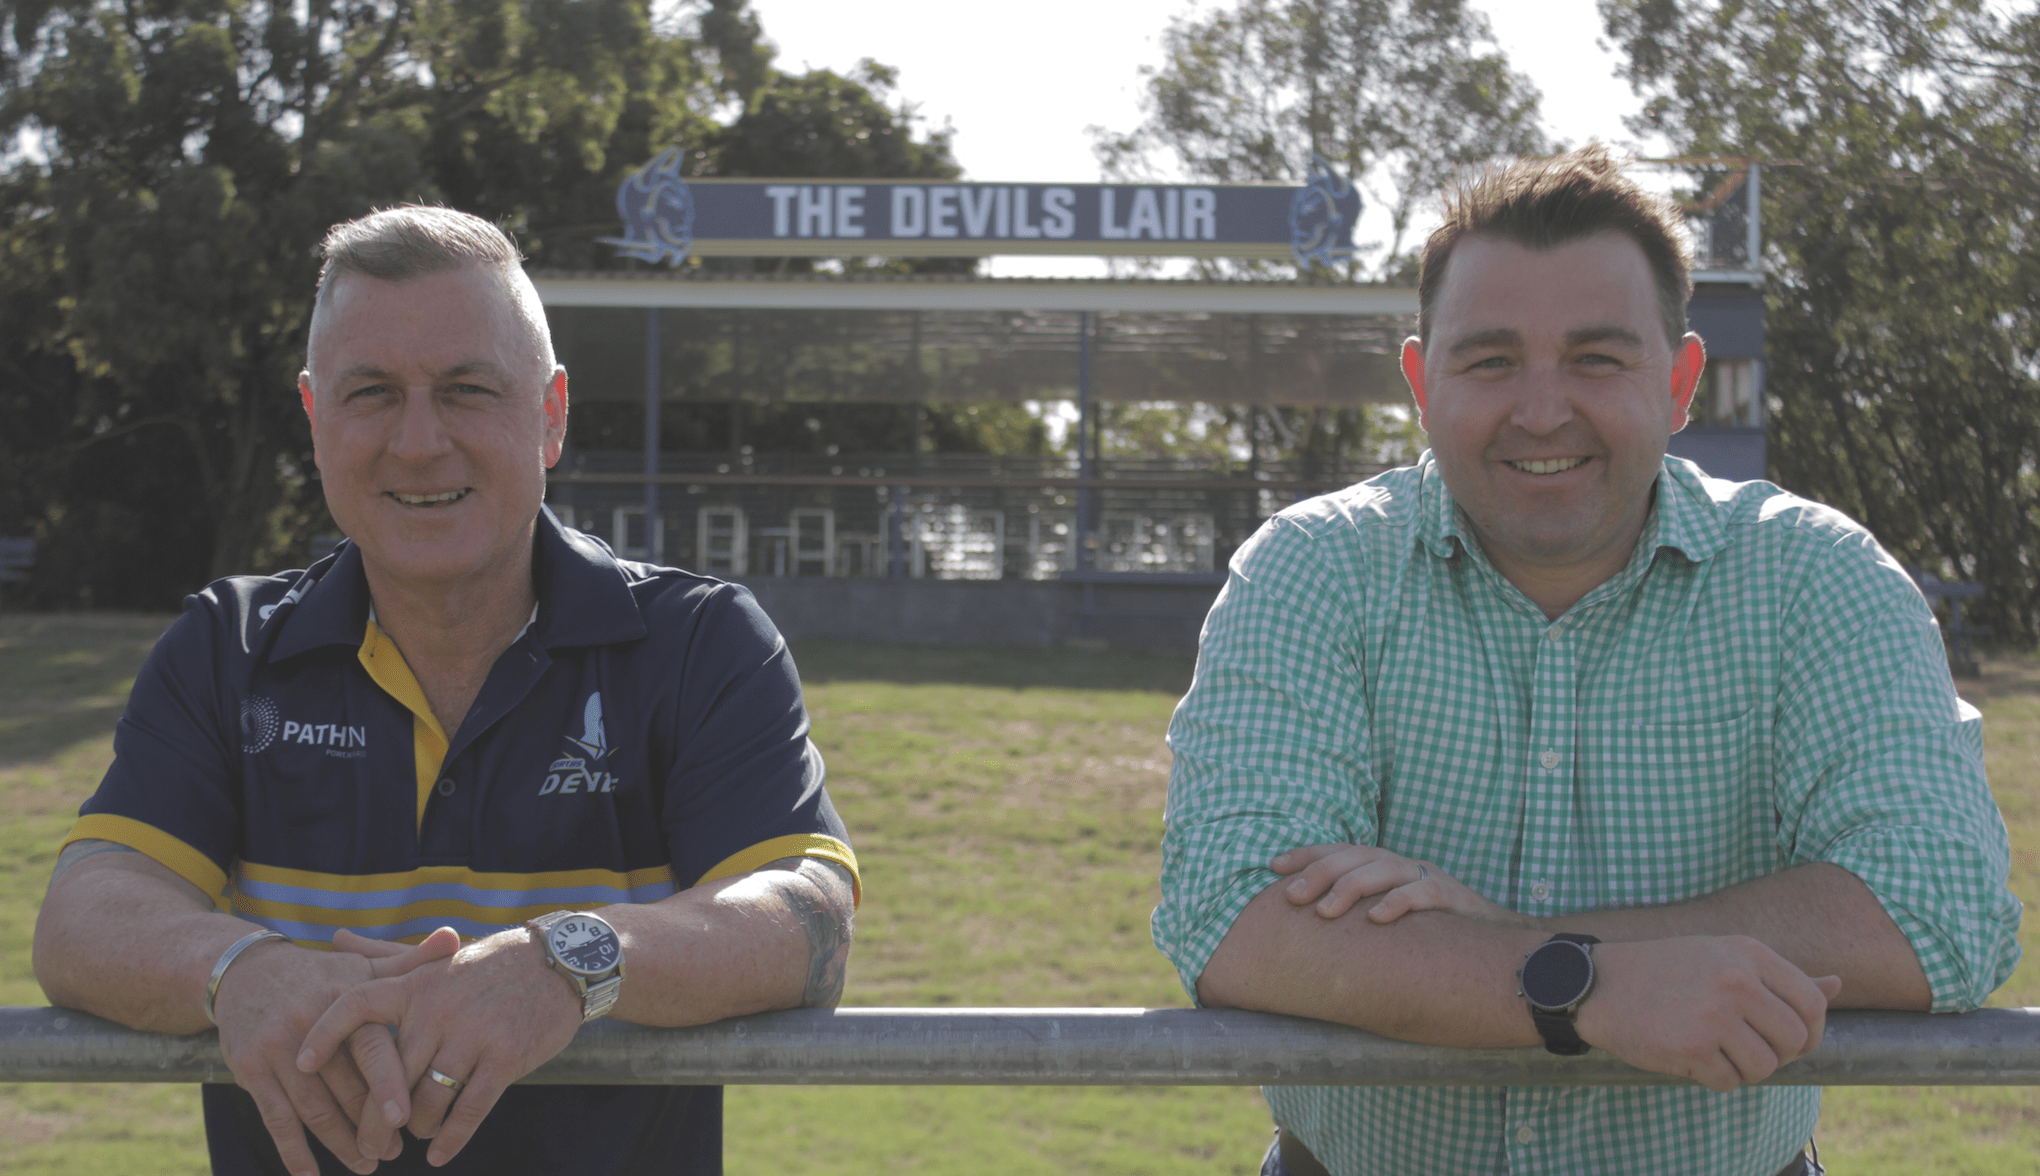 CEOs switch as Devils open Lair